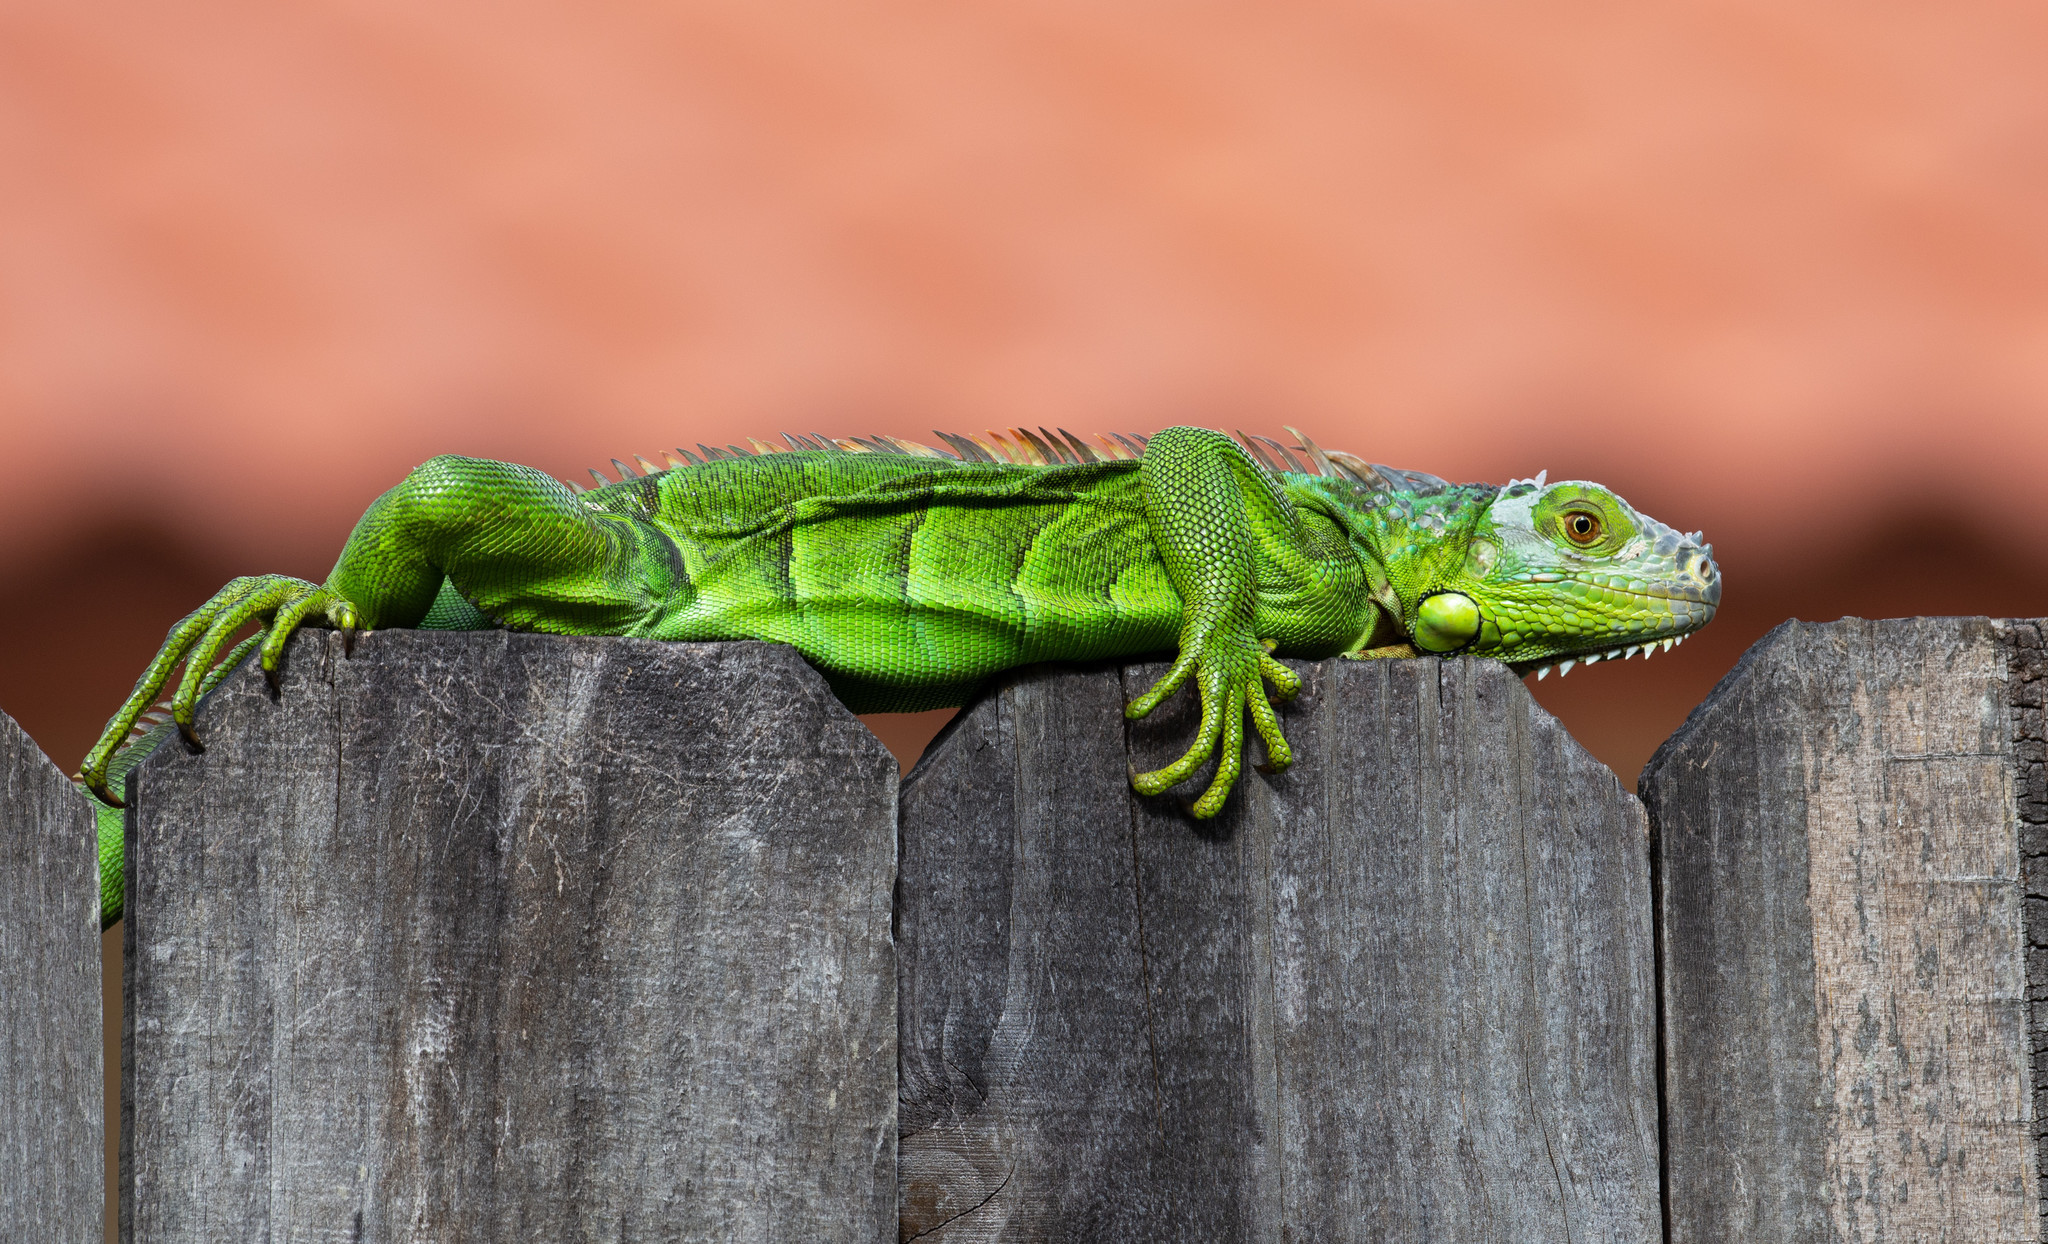 Floridians warned to watch out for falling iguanas at night